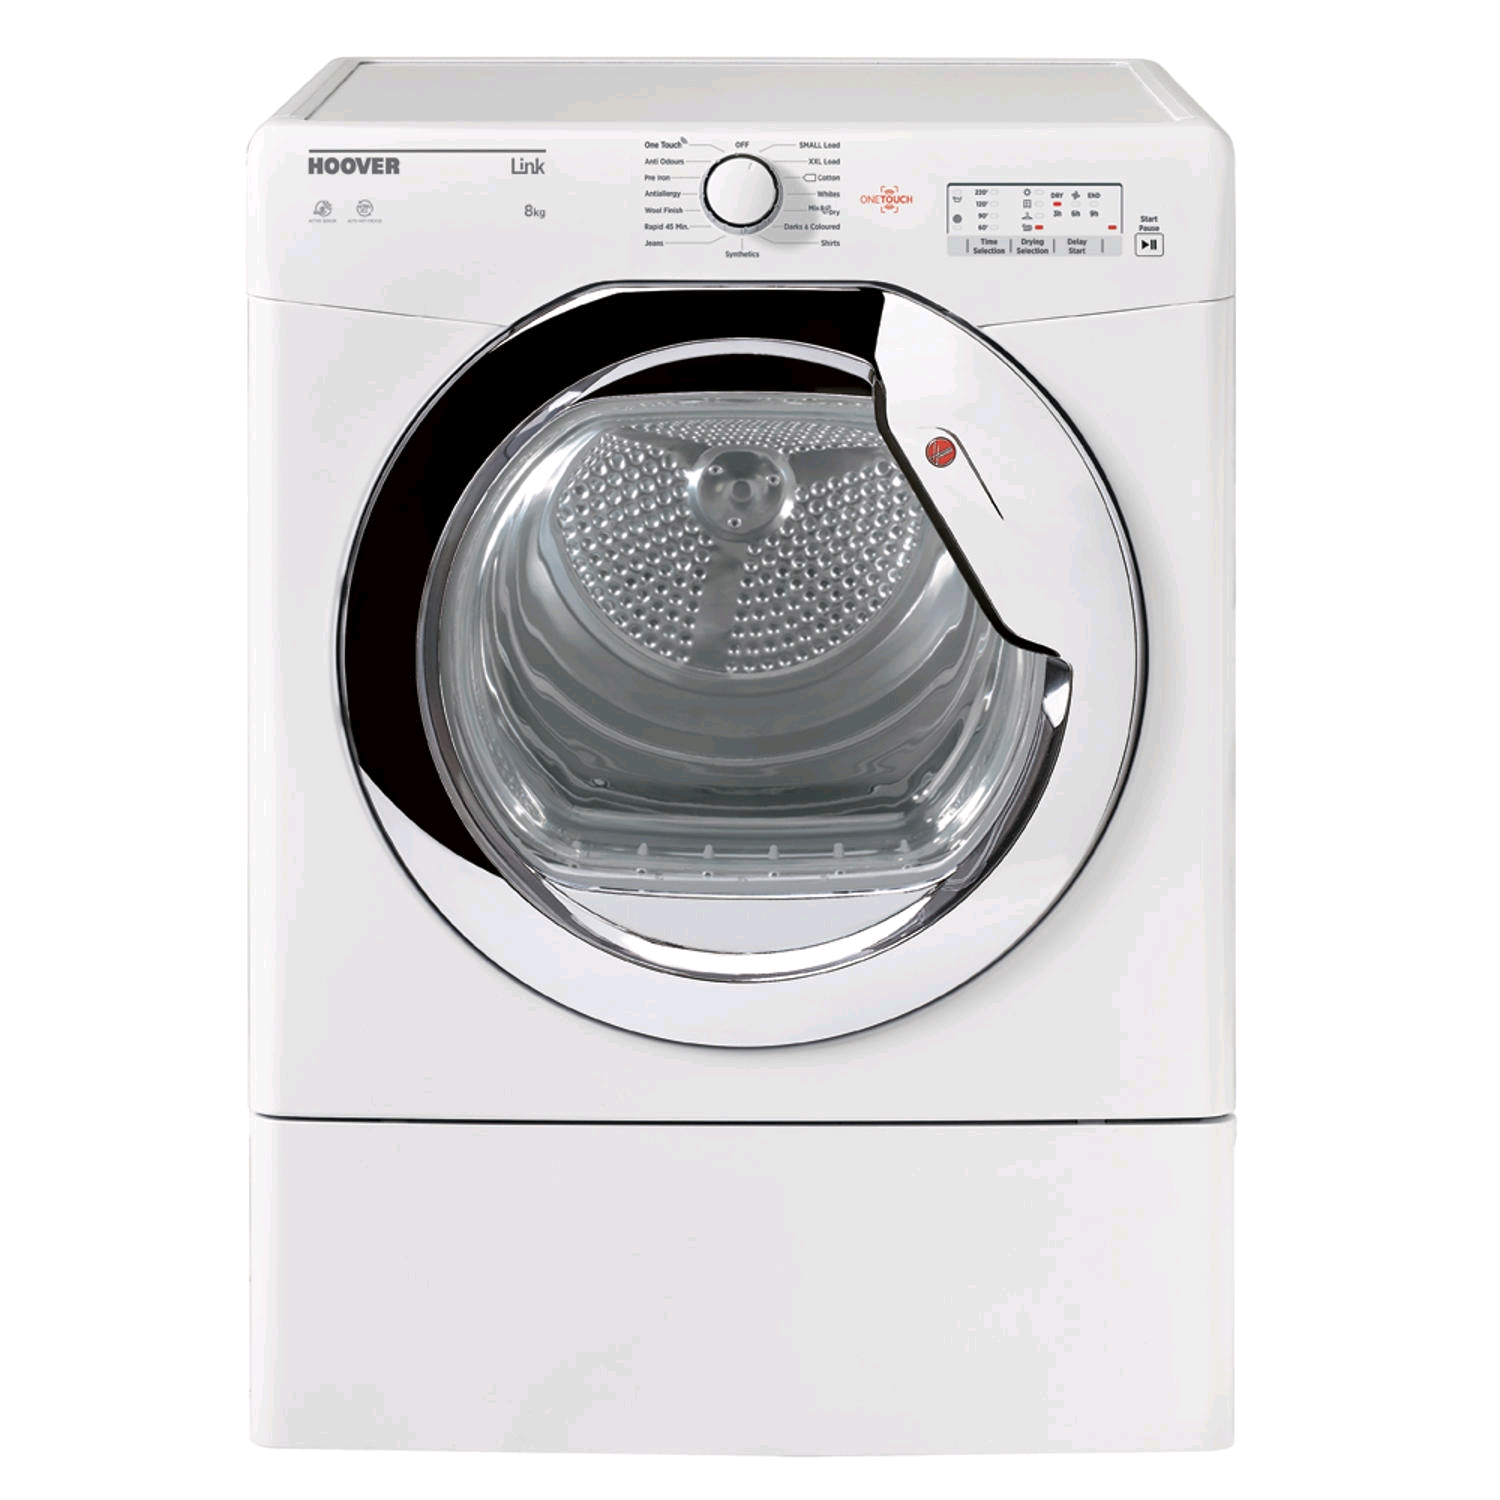 Hoover Tumble Dryer Vented 8KG C Energy H85 W60 D60